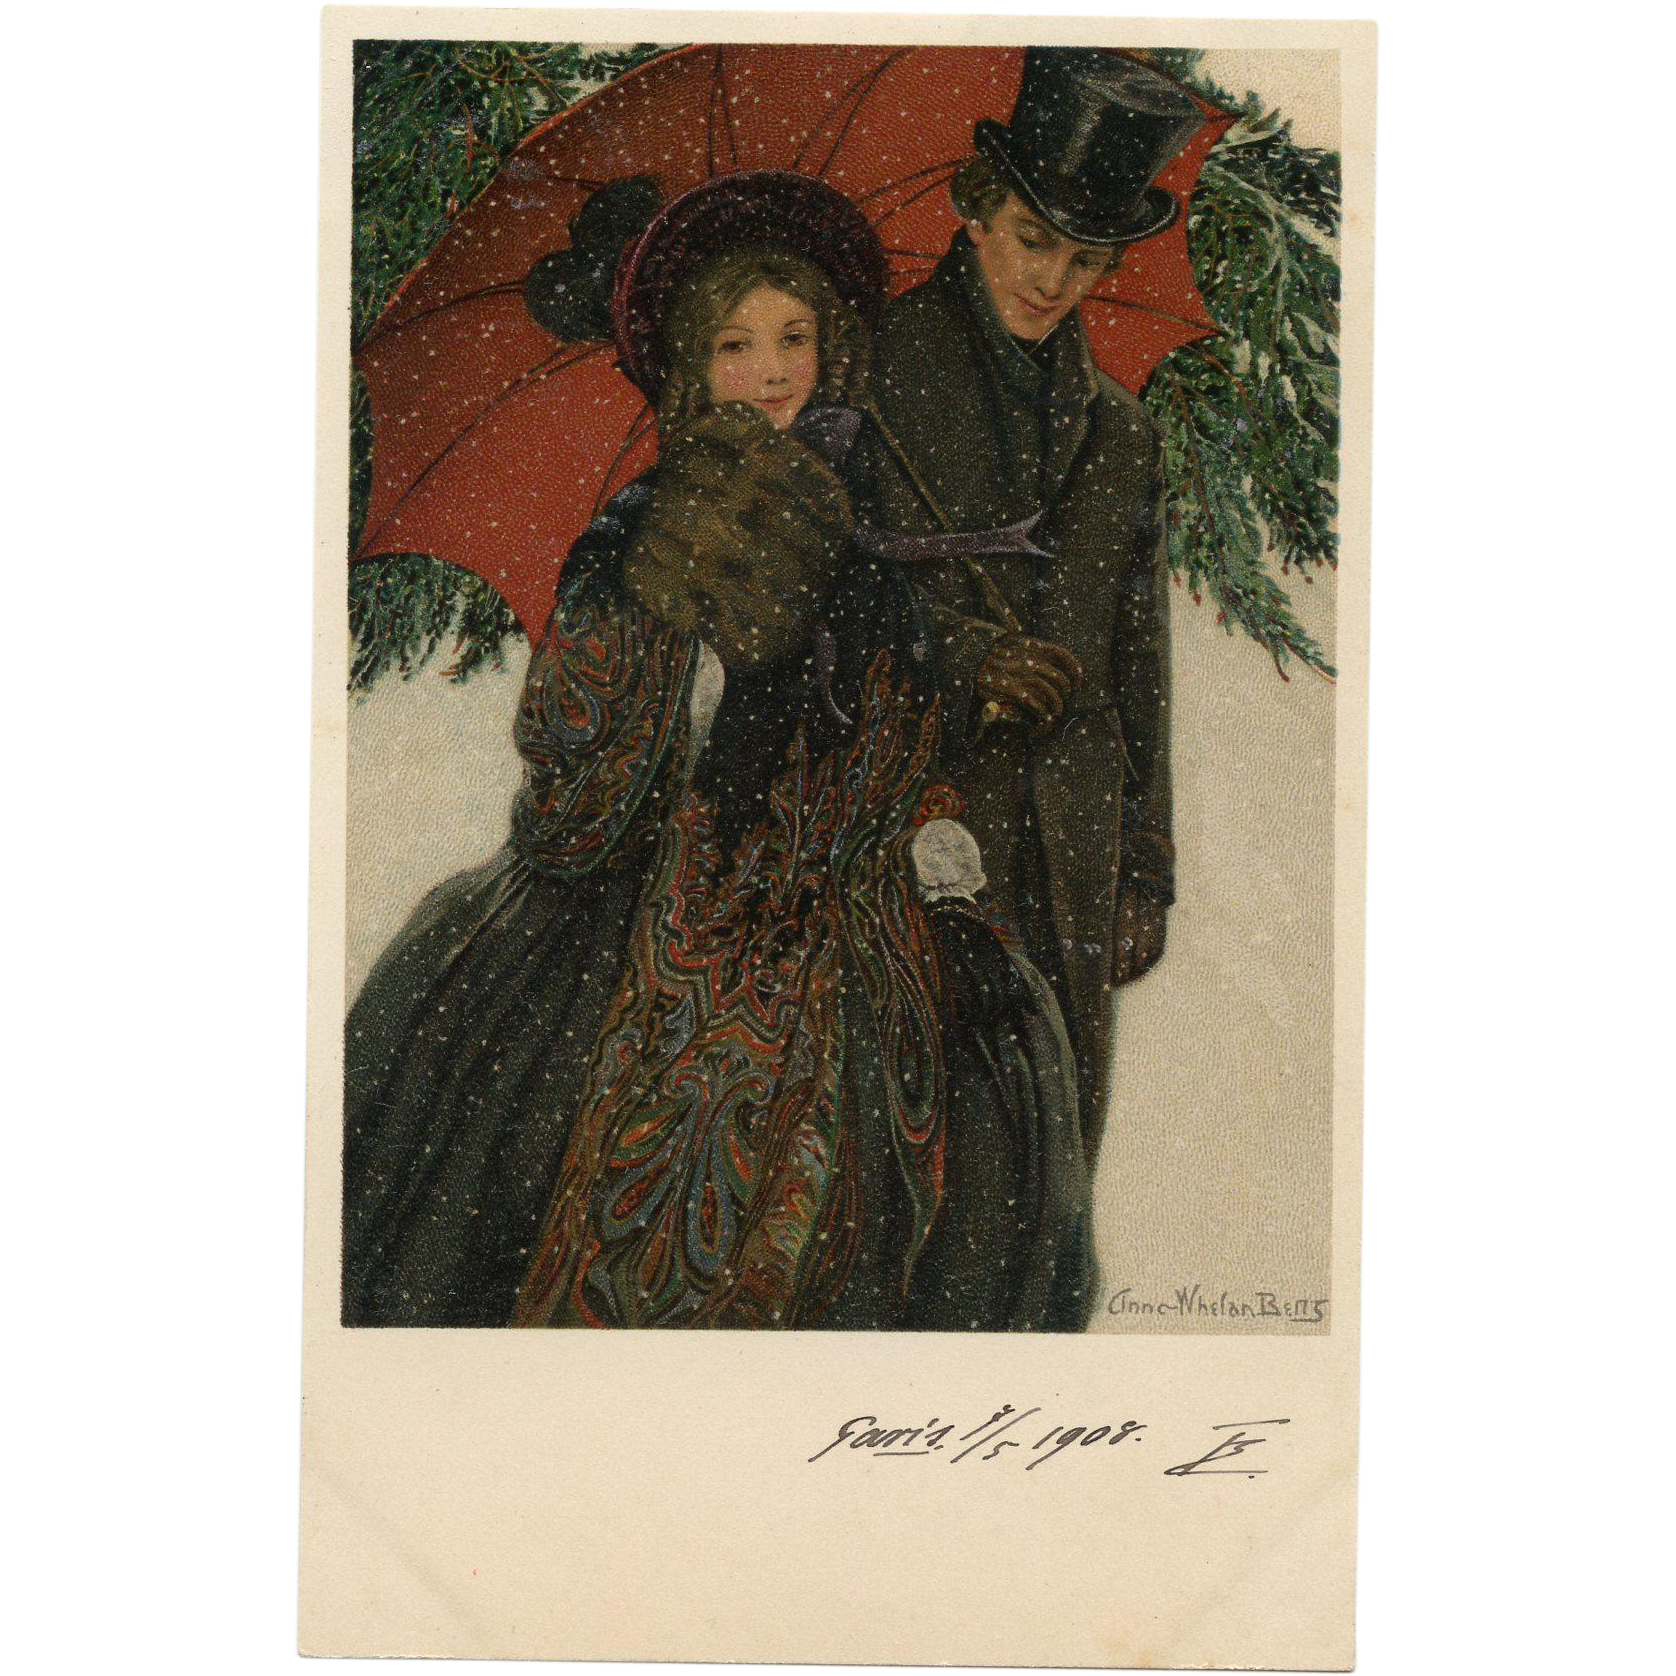 Golden Age of Illustration American Artist Anna Whelan Betts 1908 Vienne Postcard from Polish Count's Collection